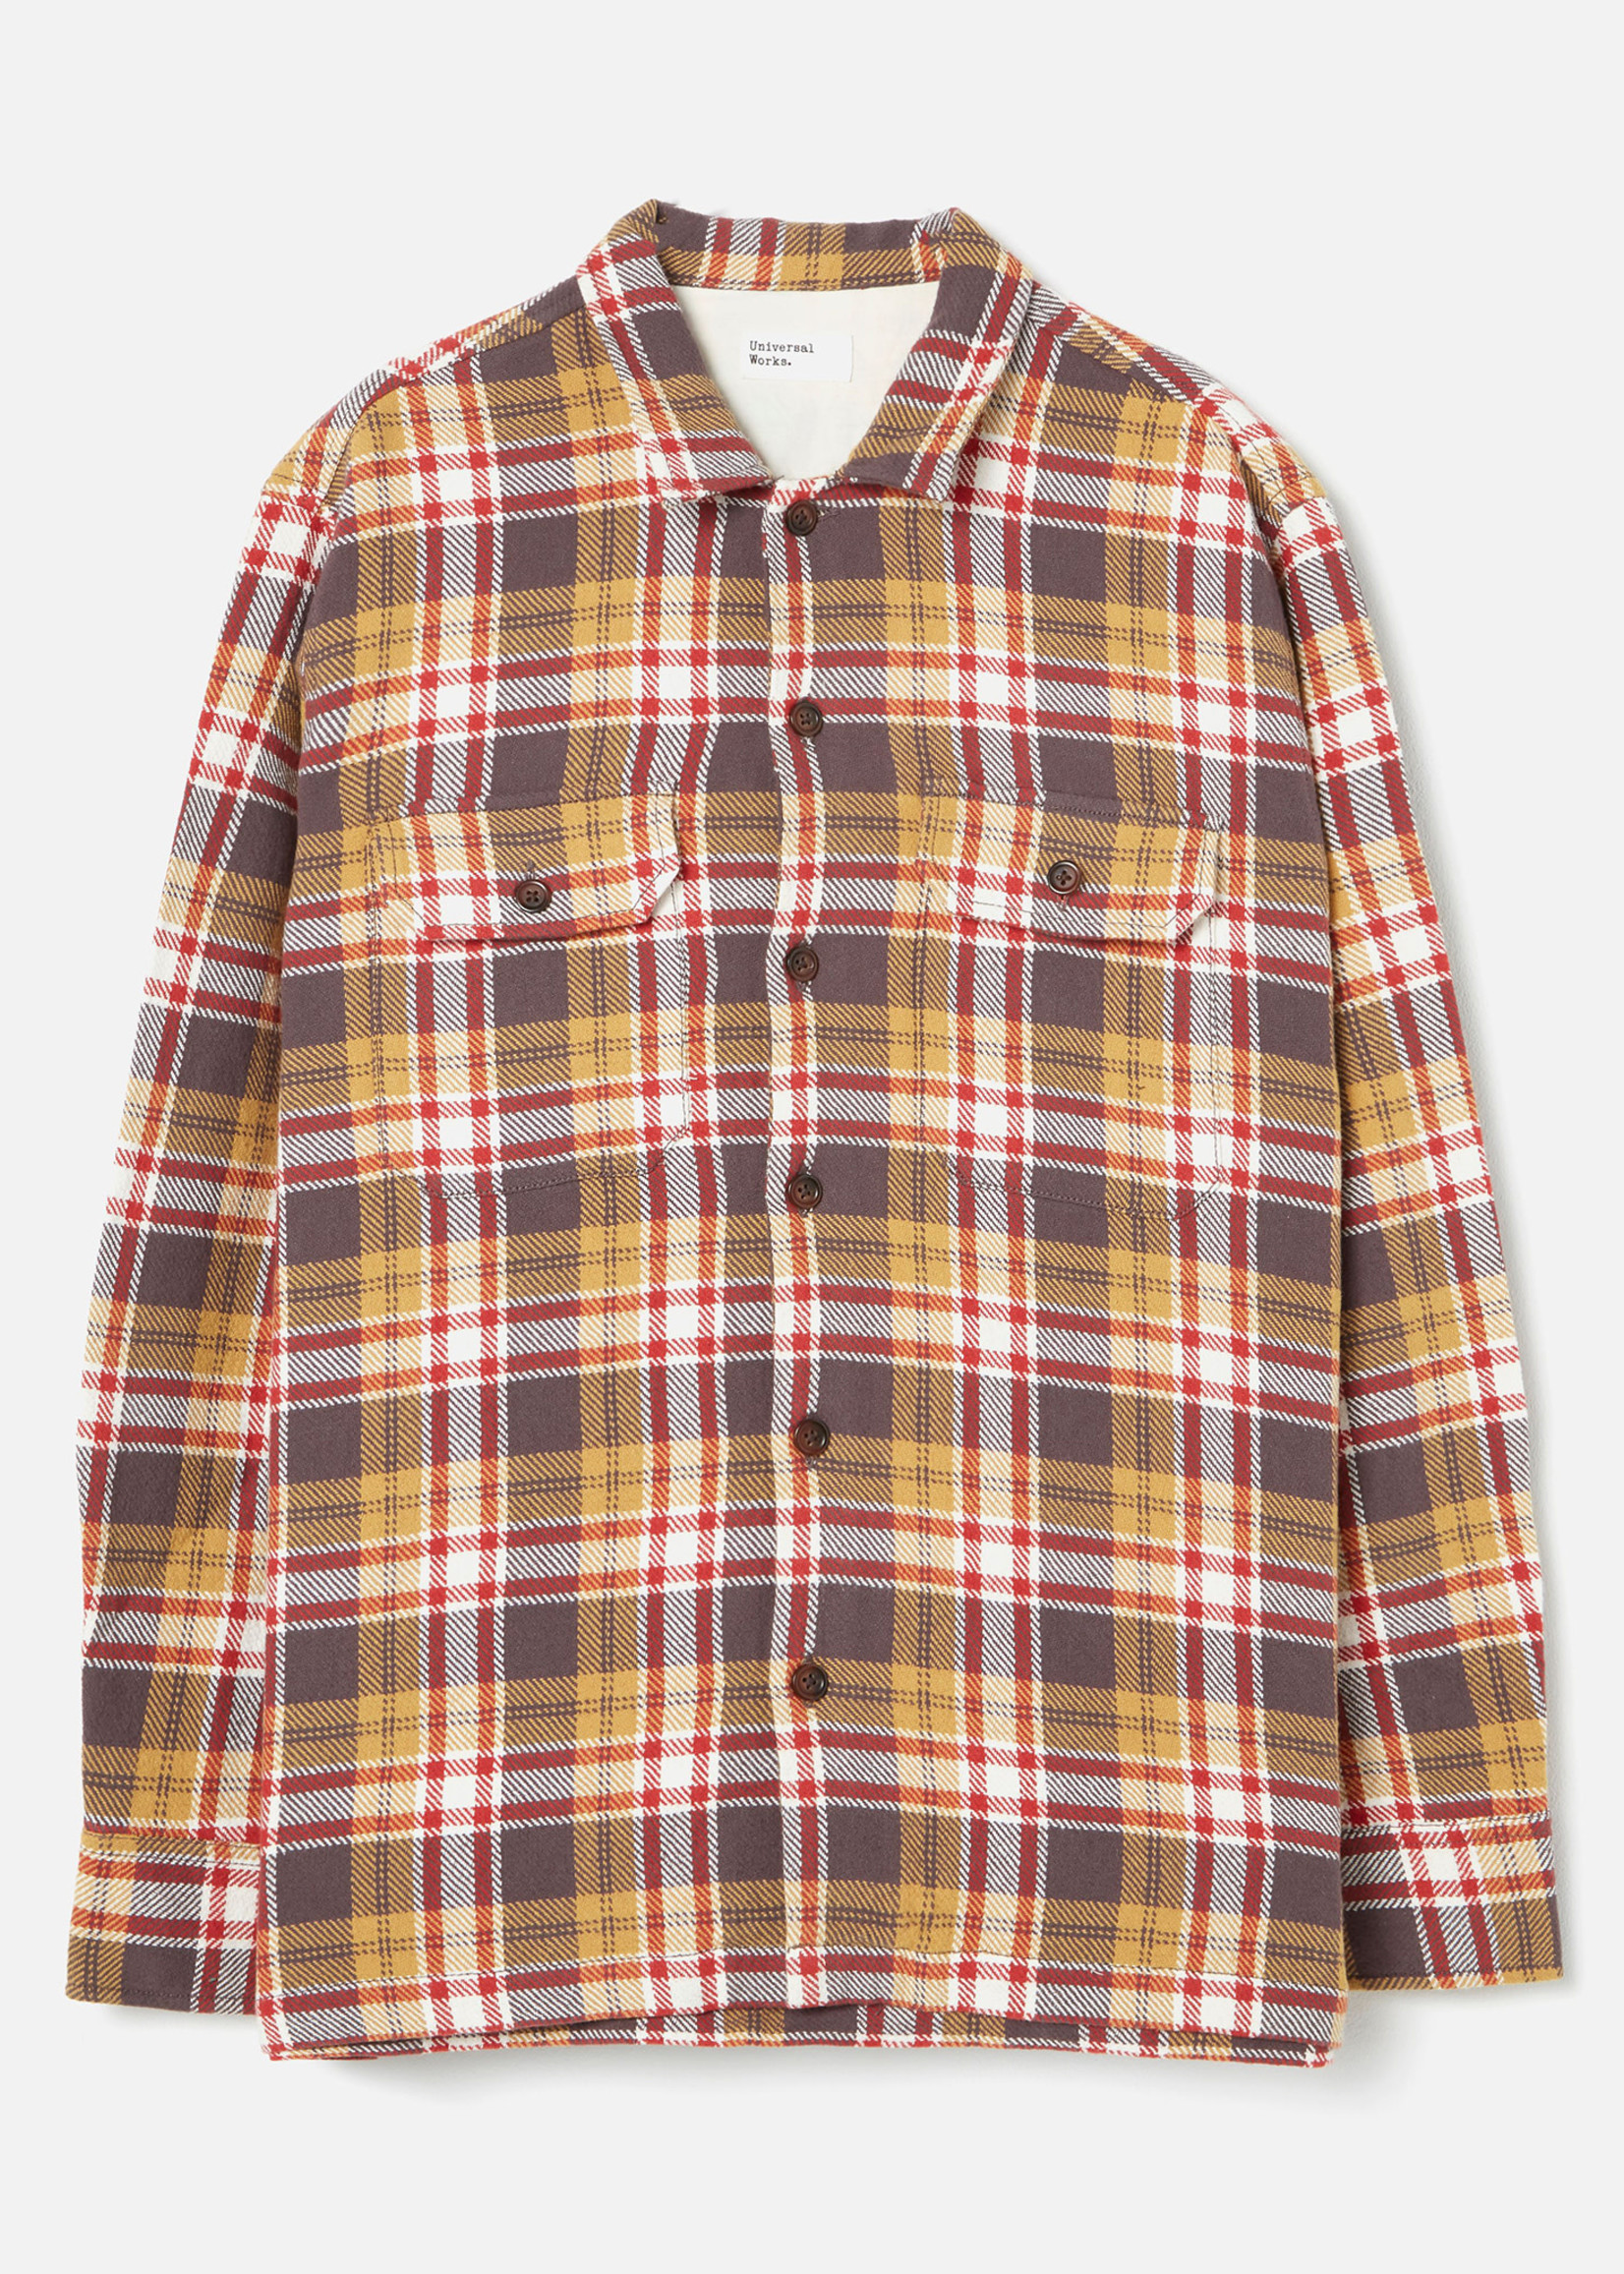 Universal Works Universal Works L/S Utility Shirt Sand/Red Plaid Cotton